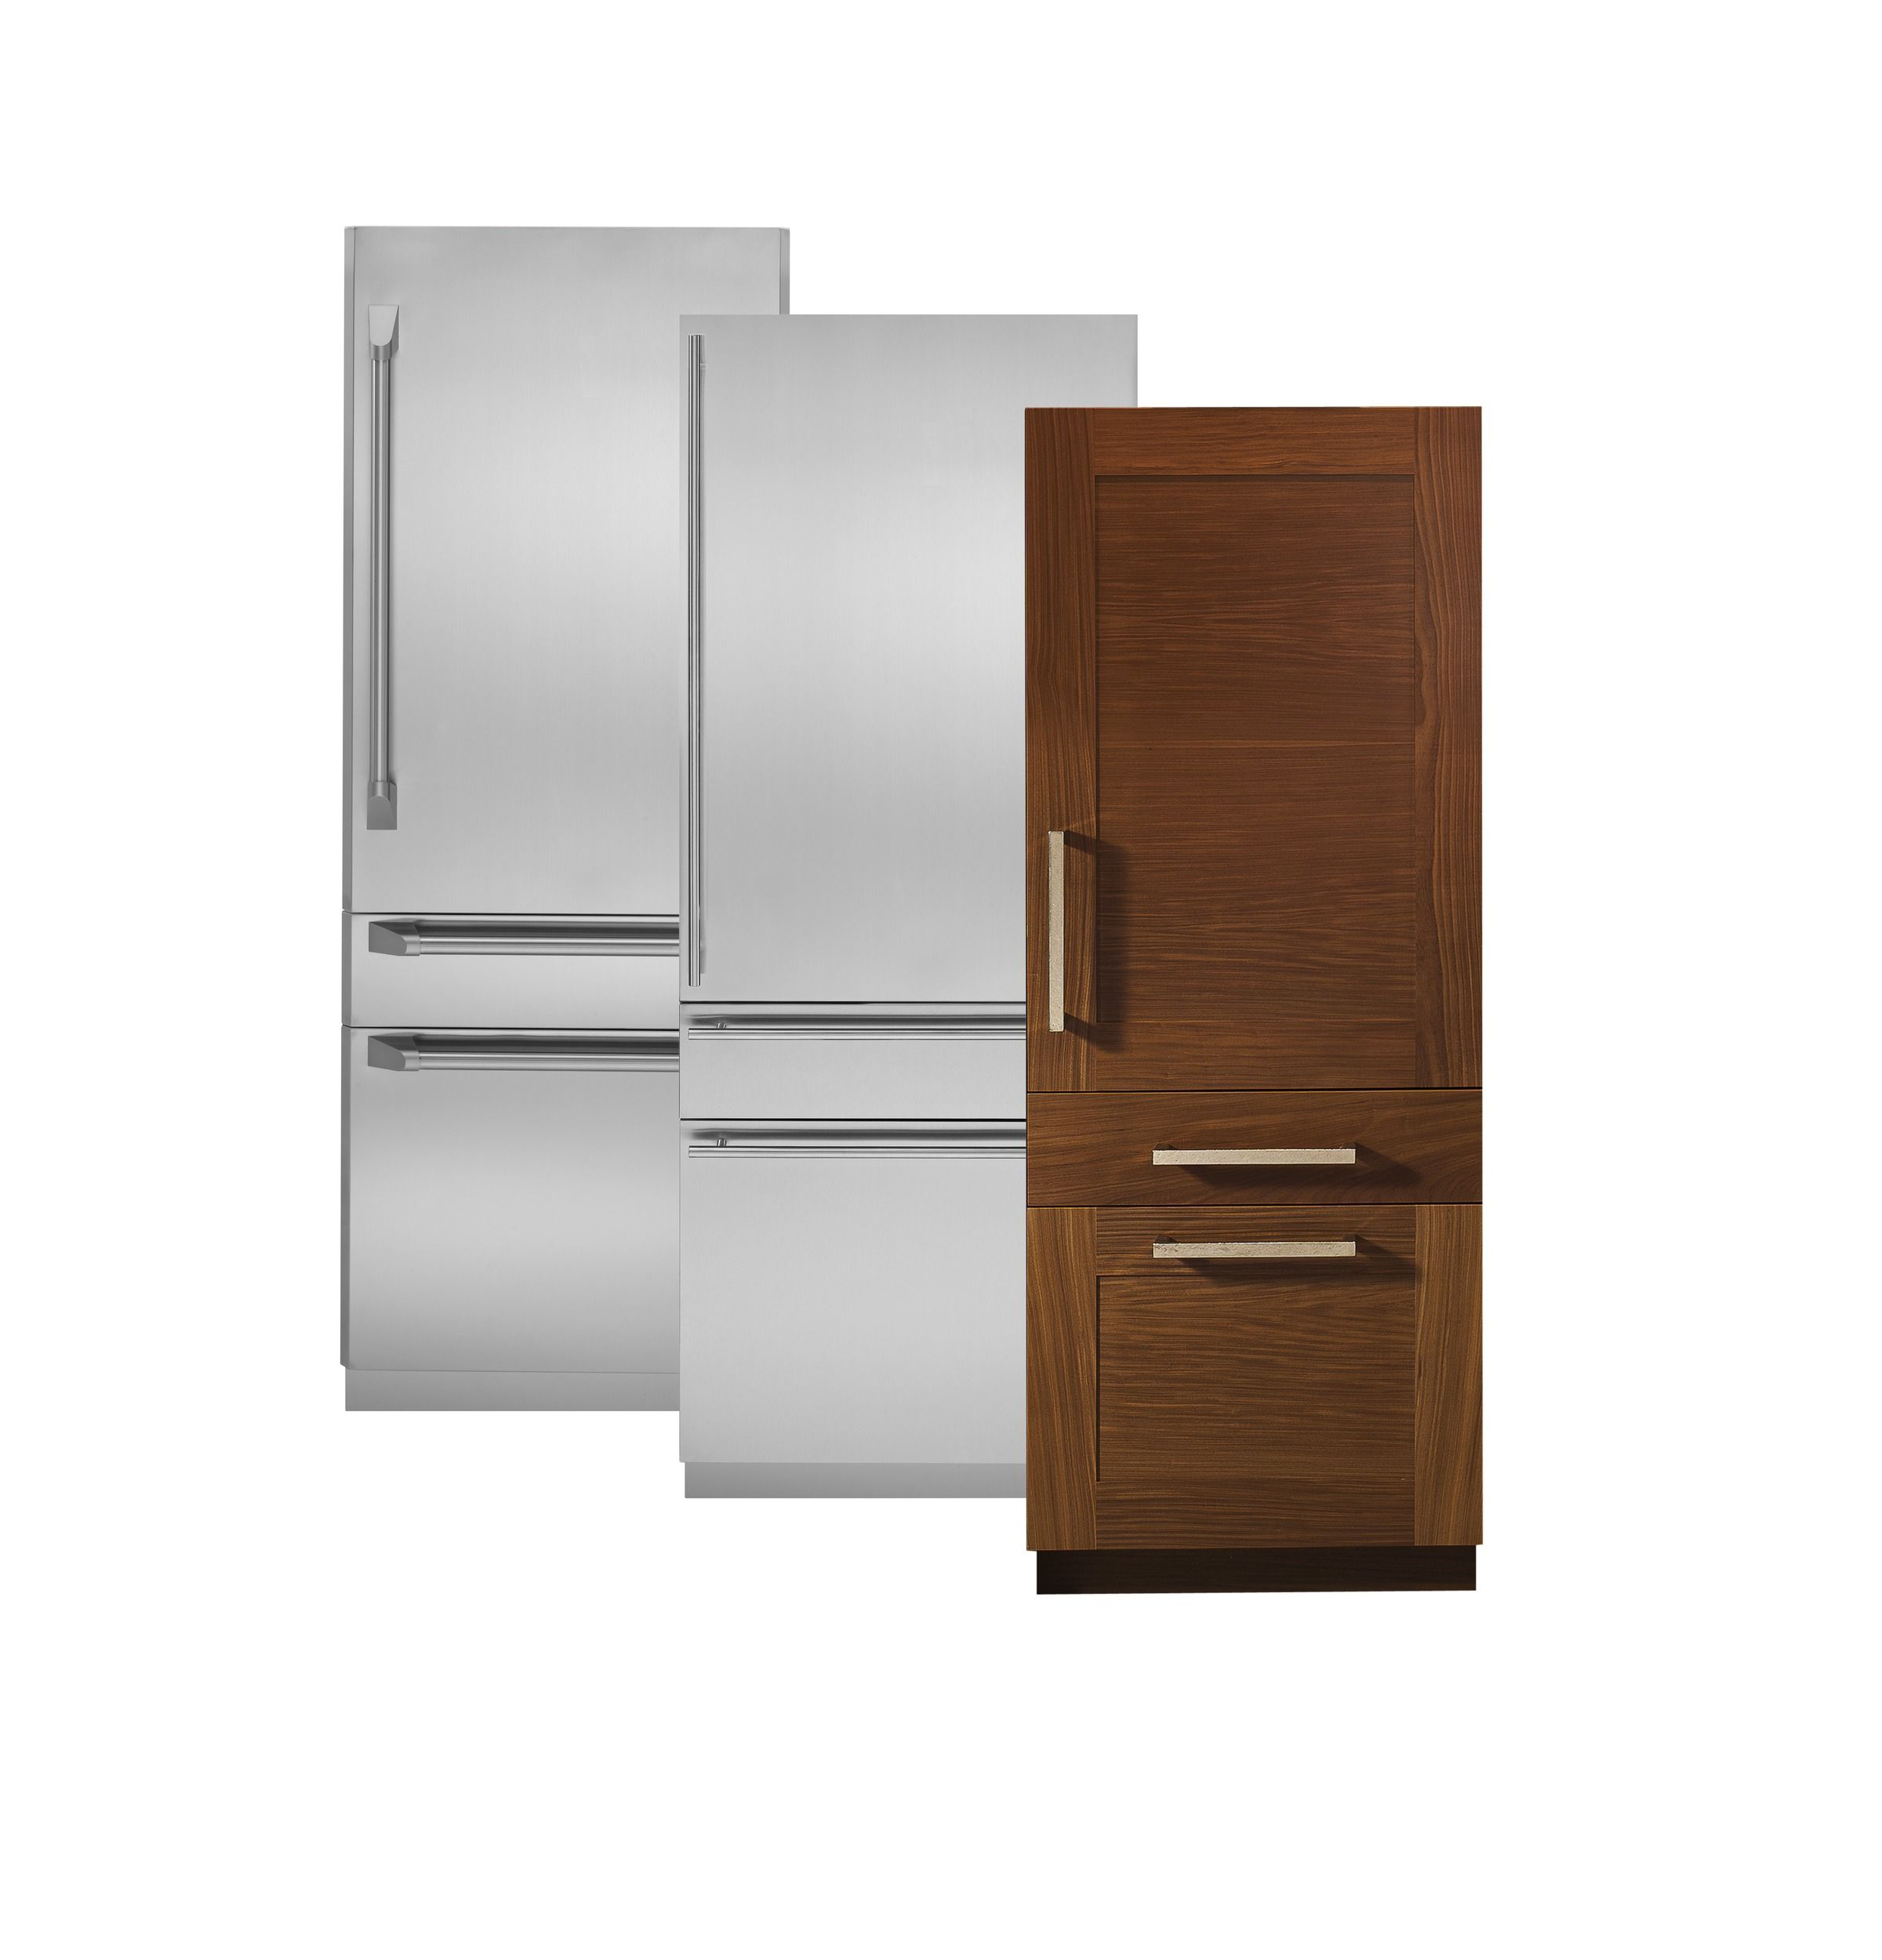 Monogram Fully Integrated Customizable Refrigerator For Single Or Dual Installation The Collection